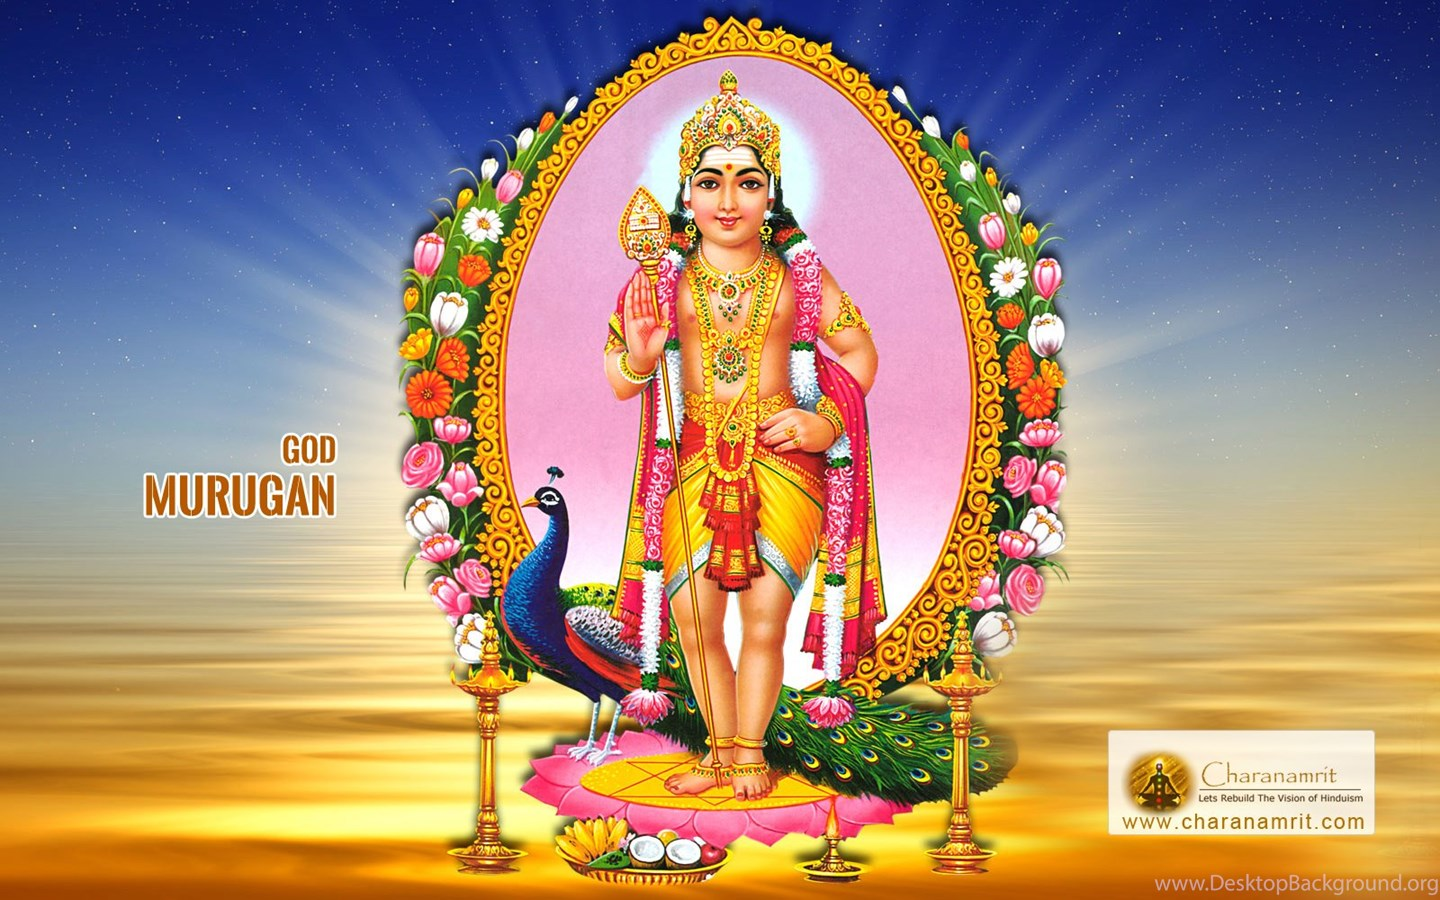 Hd Animated Wallpapers For Mobile Free Download God Shree Murugan Dev Beautiful Hd Wallpapers For Free